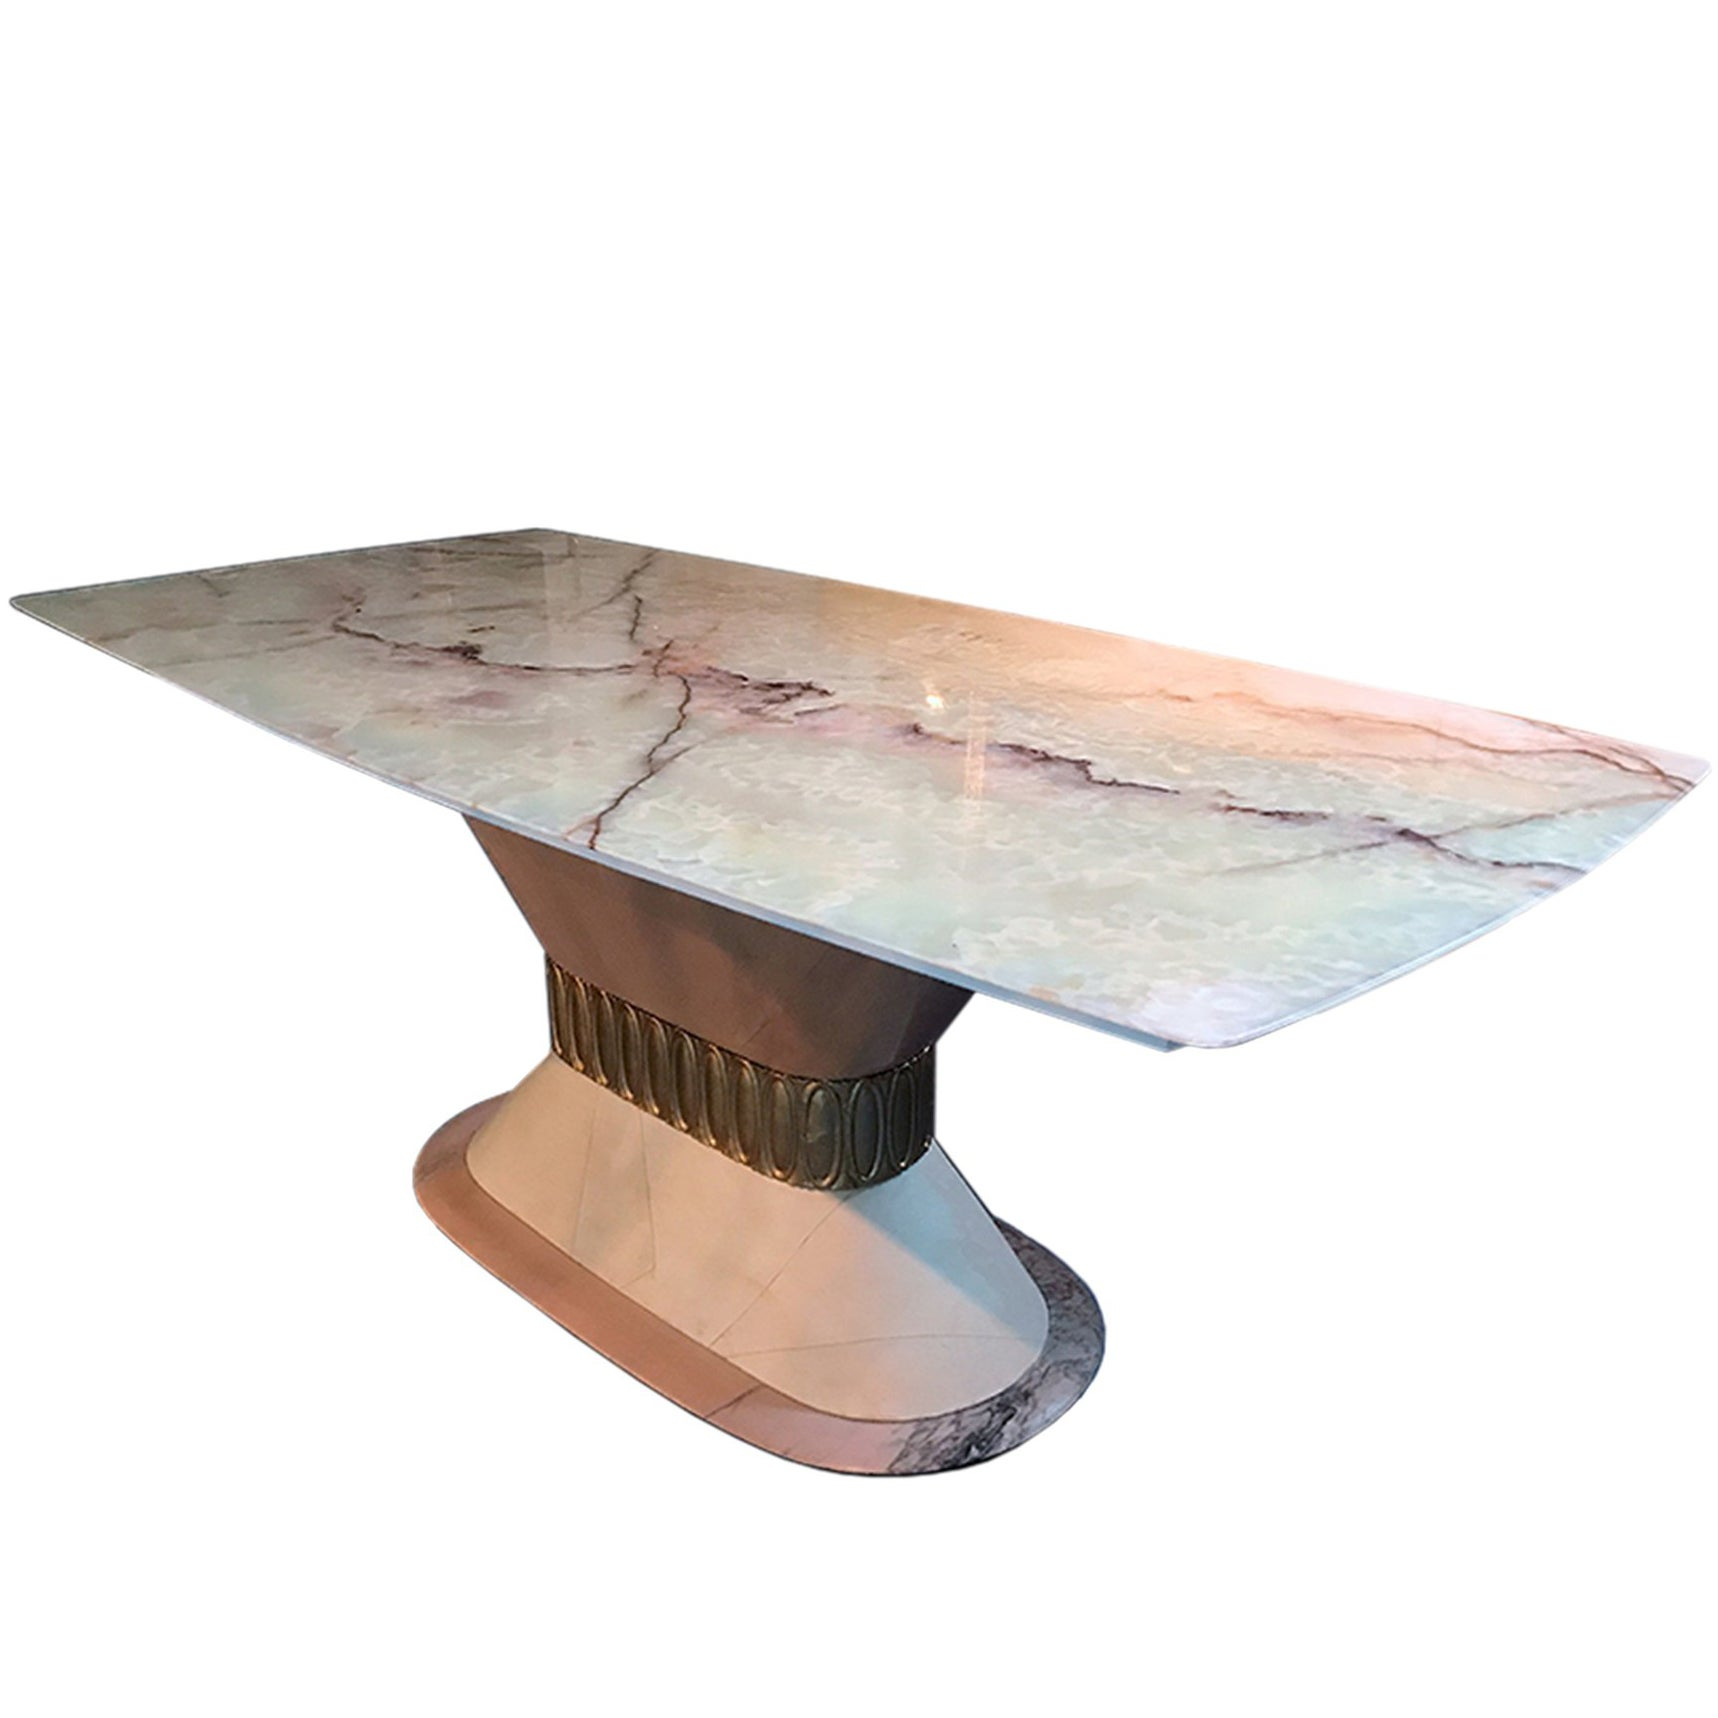 Italian Art Deco Marble Dining Table Style of Osvaldo Borsani, 1940s